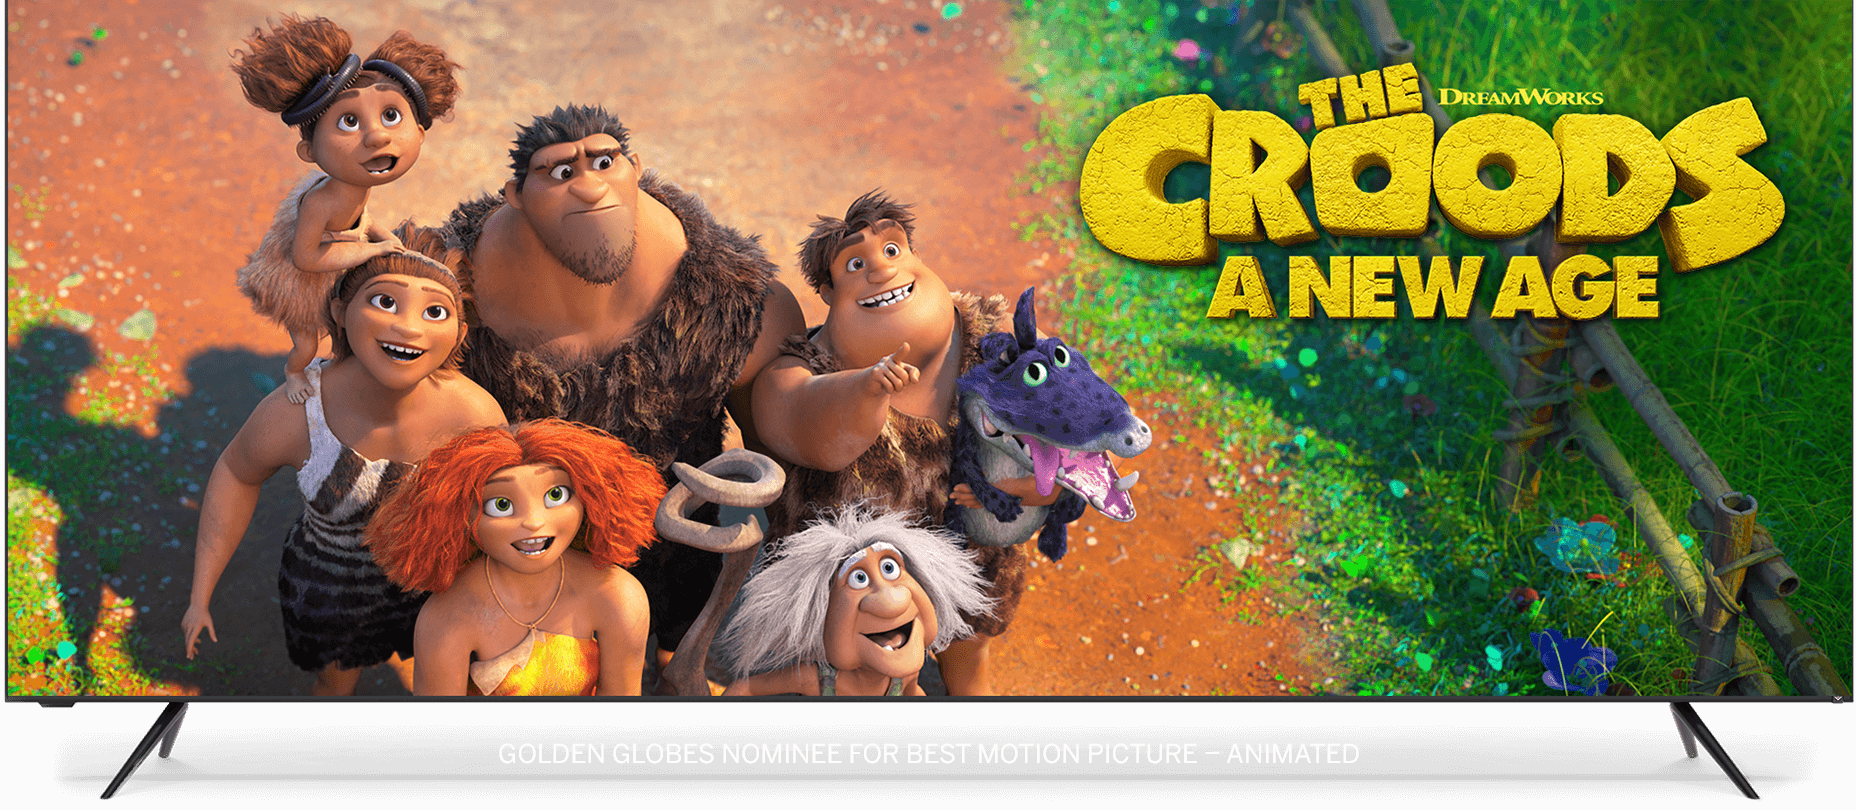 VIZIO TV Featuring Croods